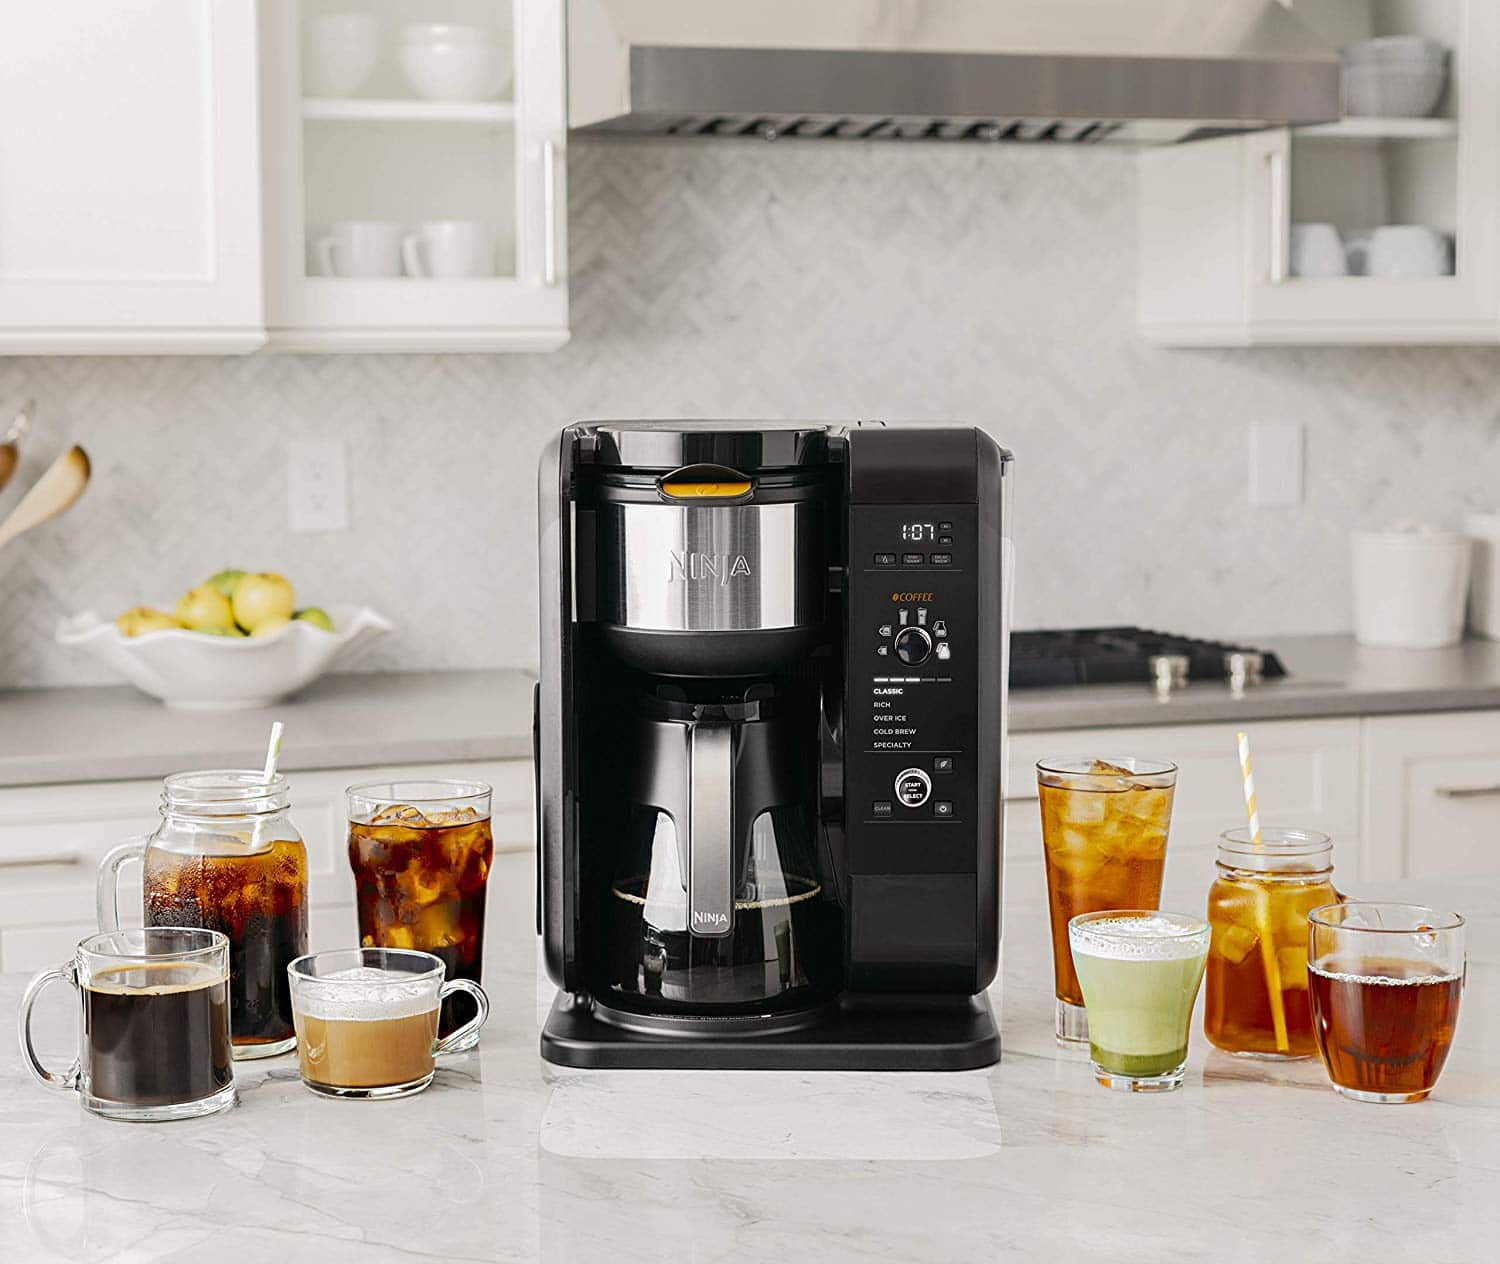 Top 10 Best Cold Brew Coffee Makers in 2020 Reviews | Buyer's Guide